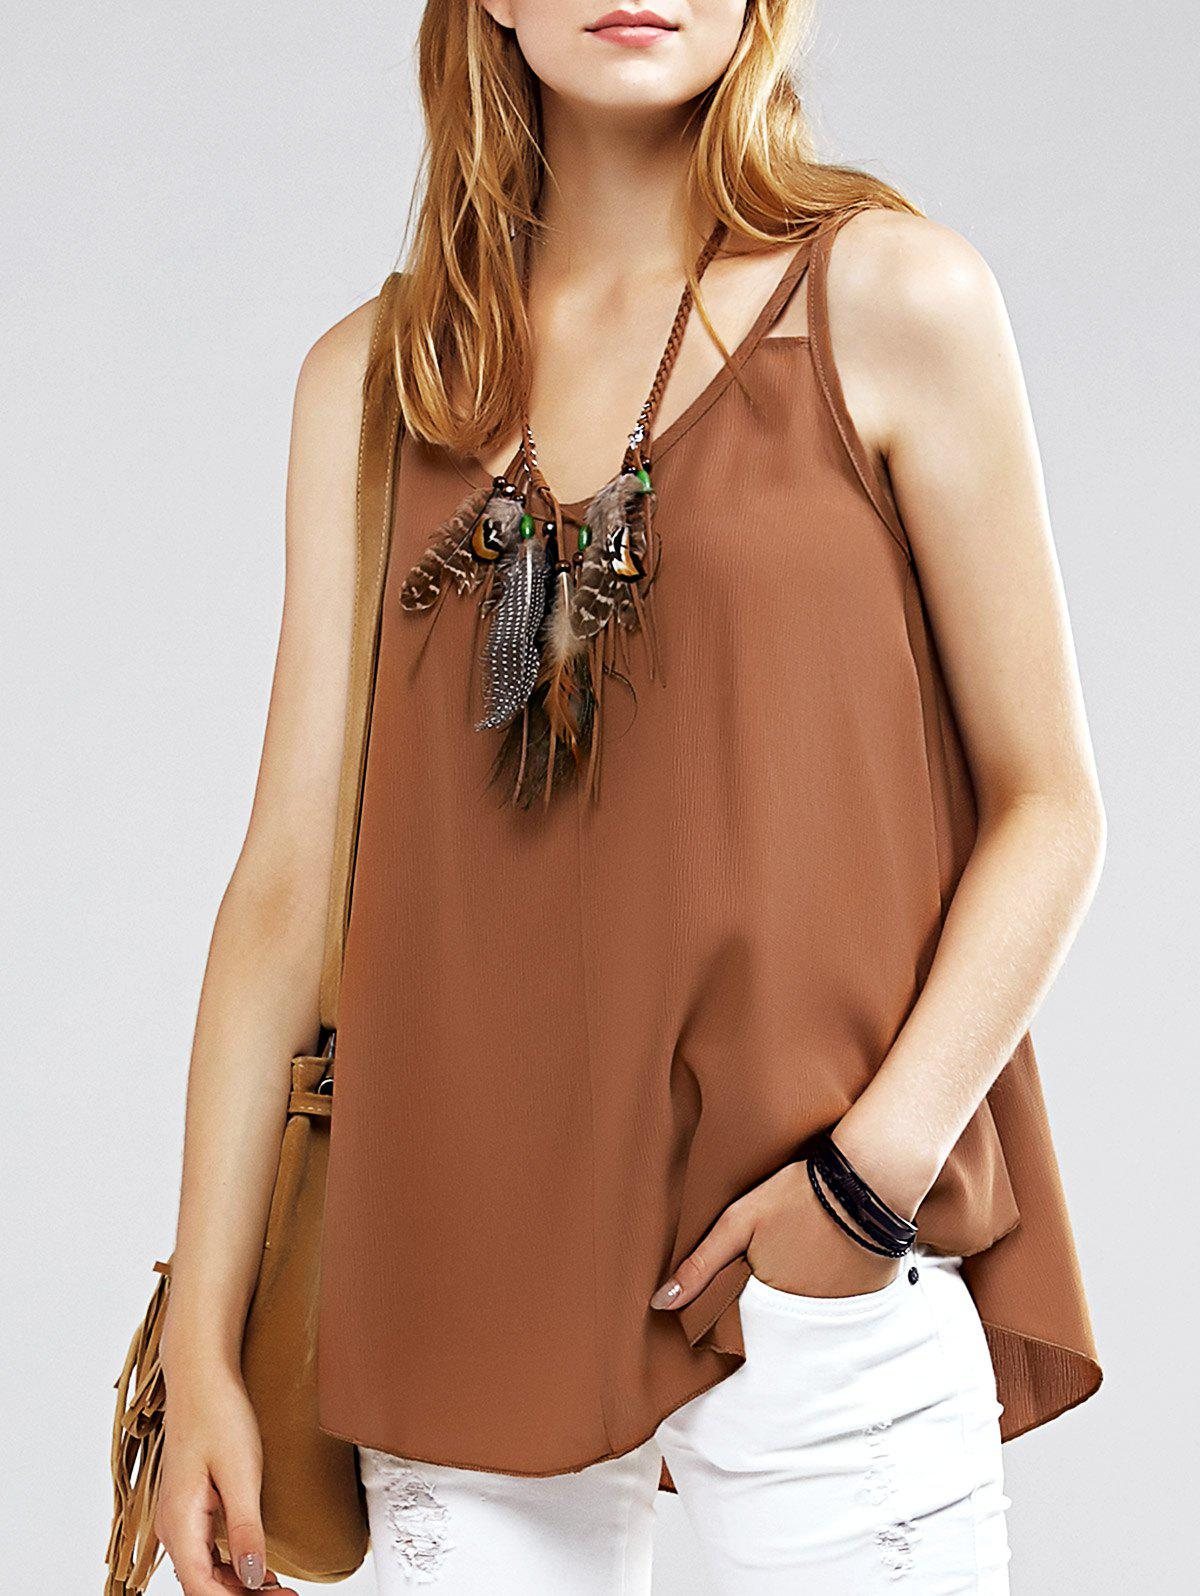 Strappy Curved Hem Chiffon Alluring Women's Tank Top - CAMEL XL